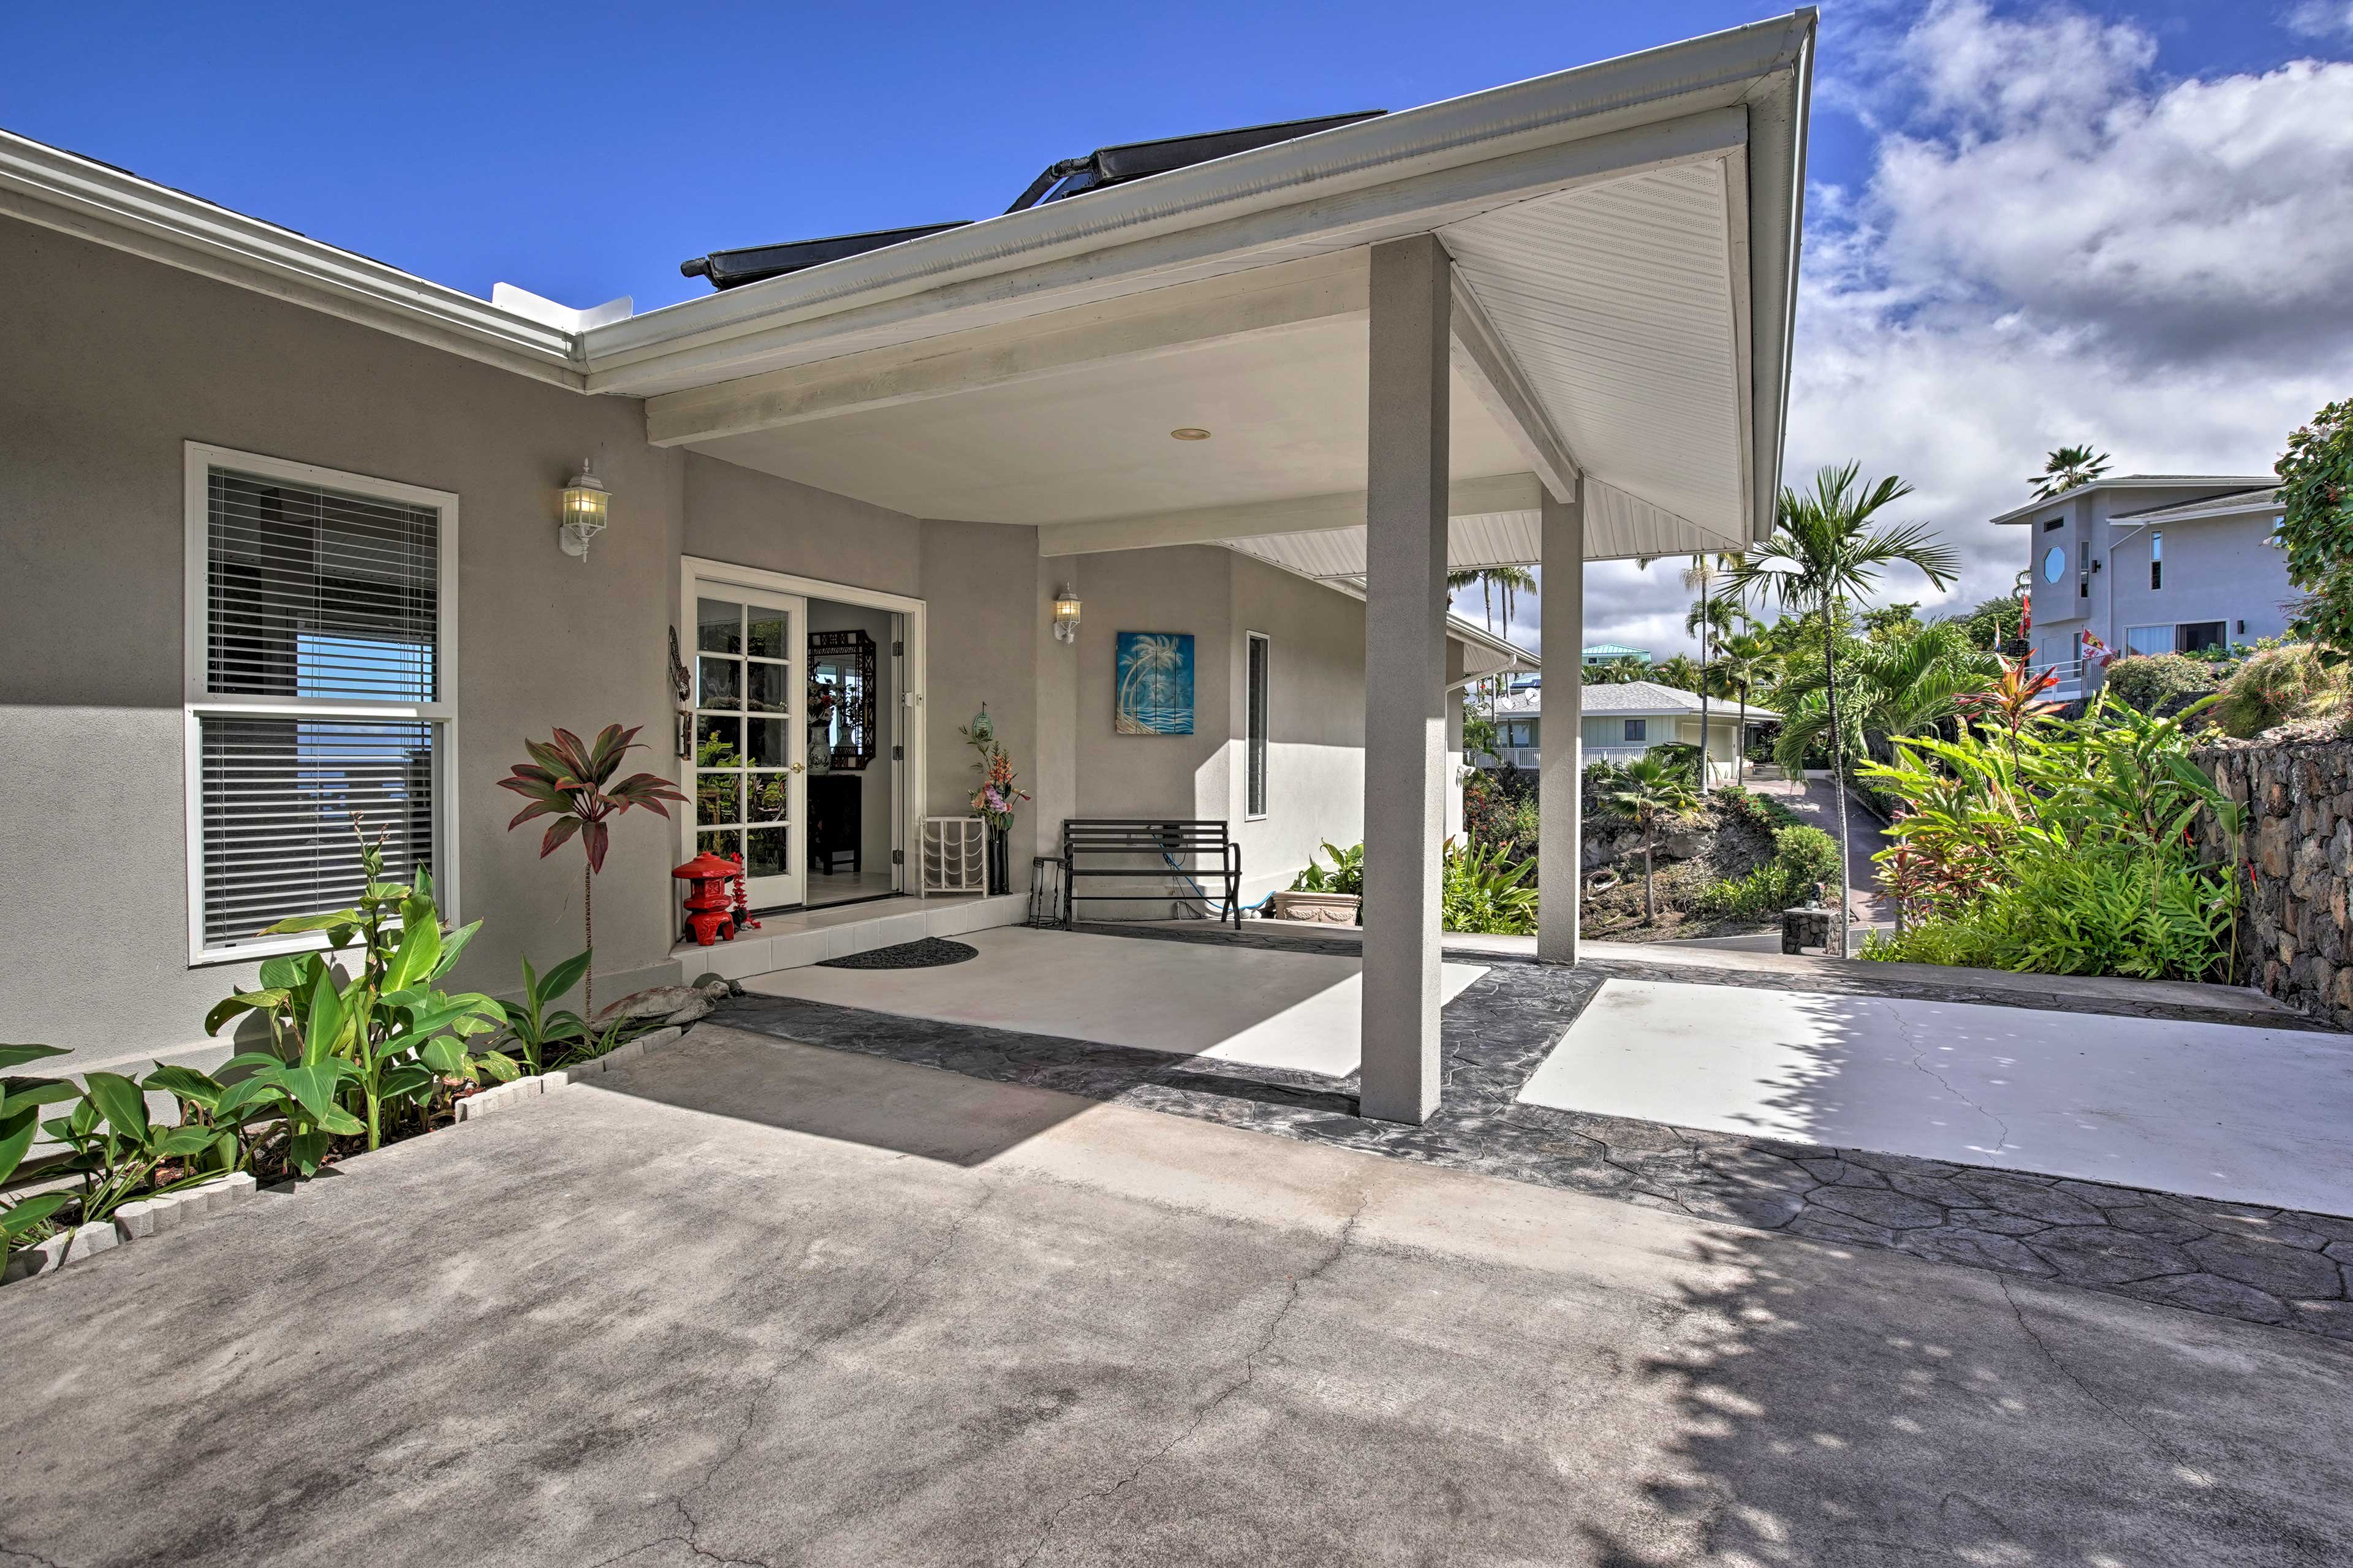 This home has parking for up to 5 vehicles in the garage and driveway.